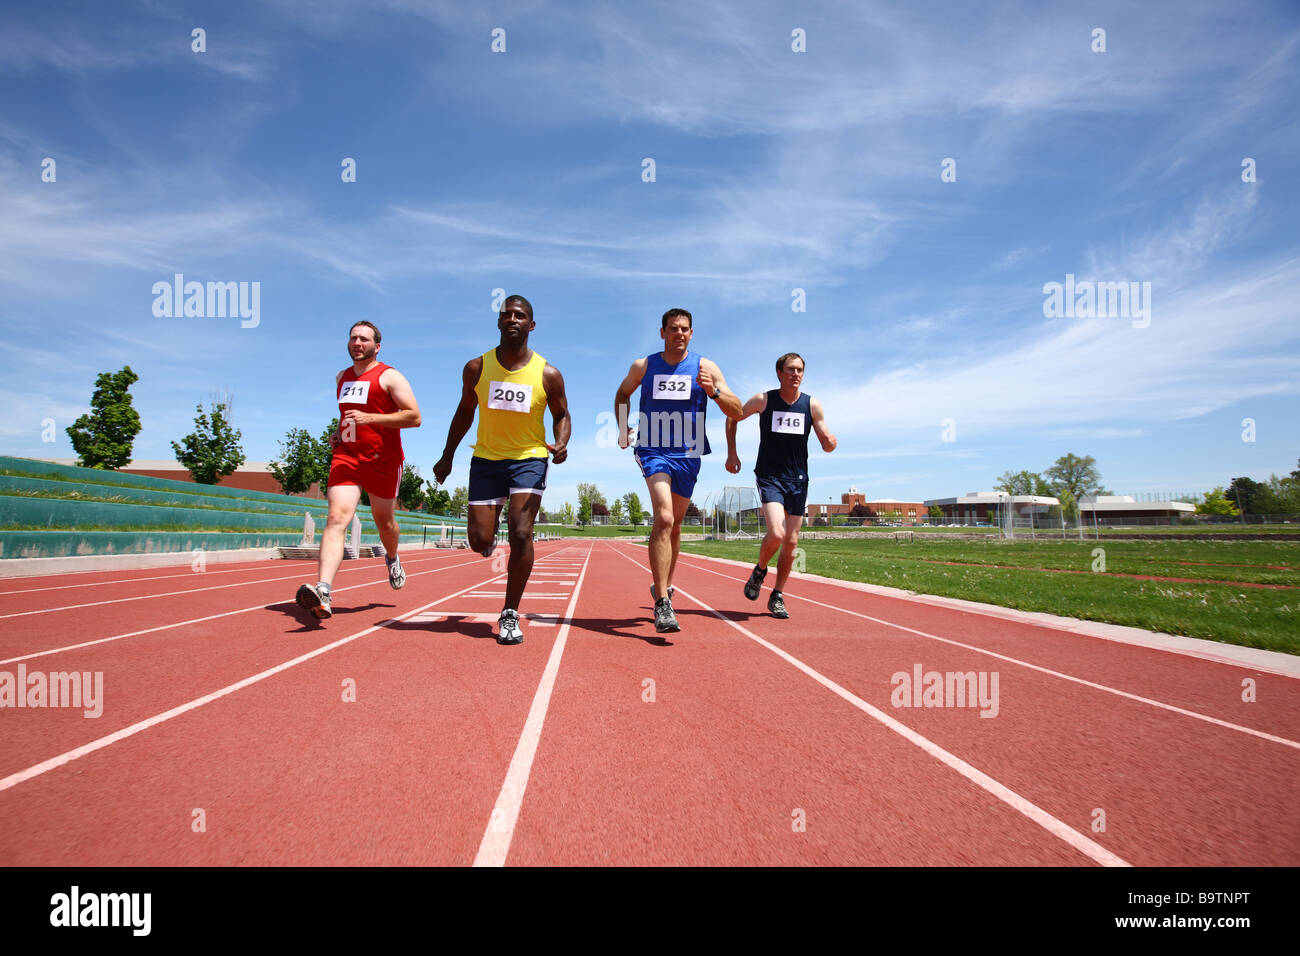 Track runners in race - Stock Image